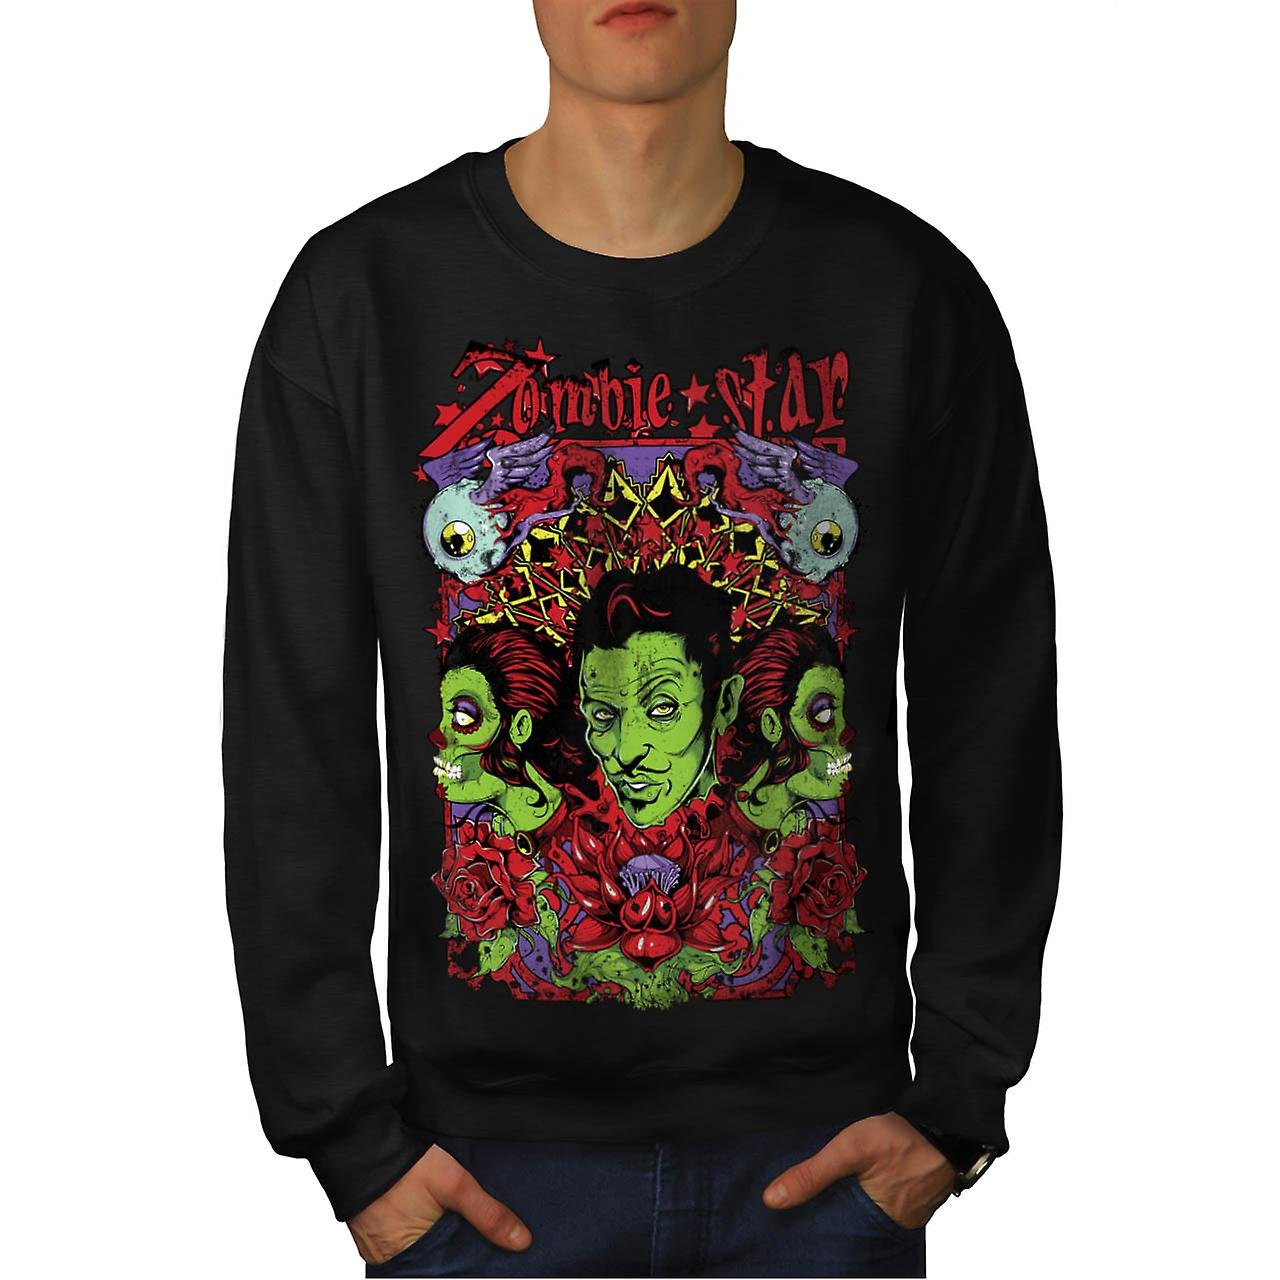 Zombie Star Group Wax Eye Angel Men Black Sweatshirt | Wellcoda